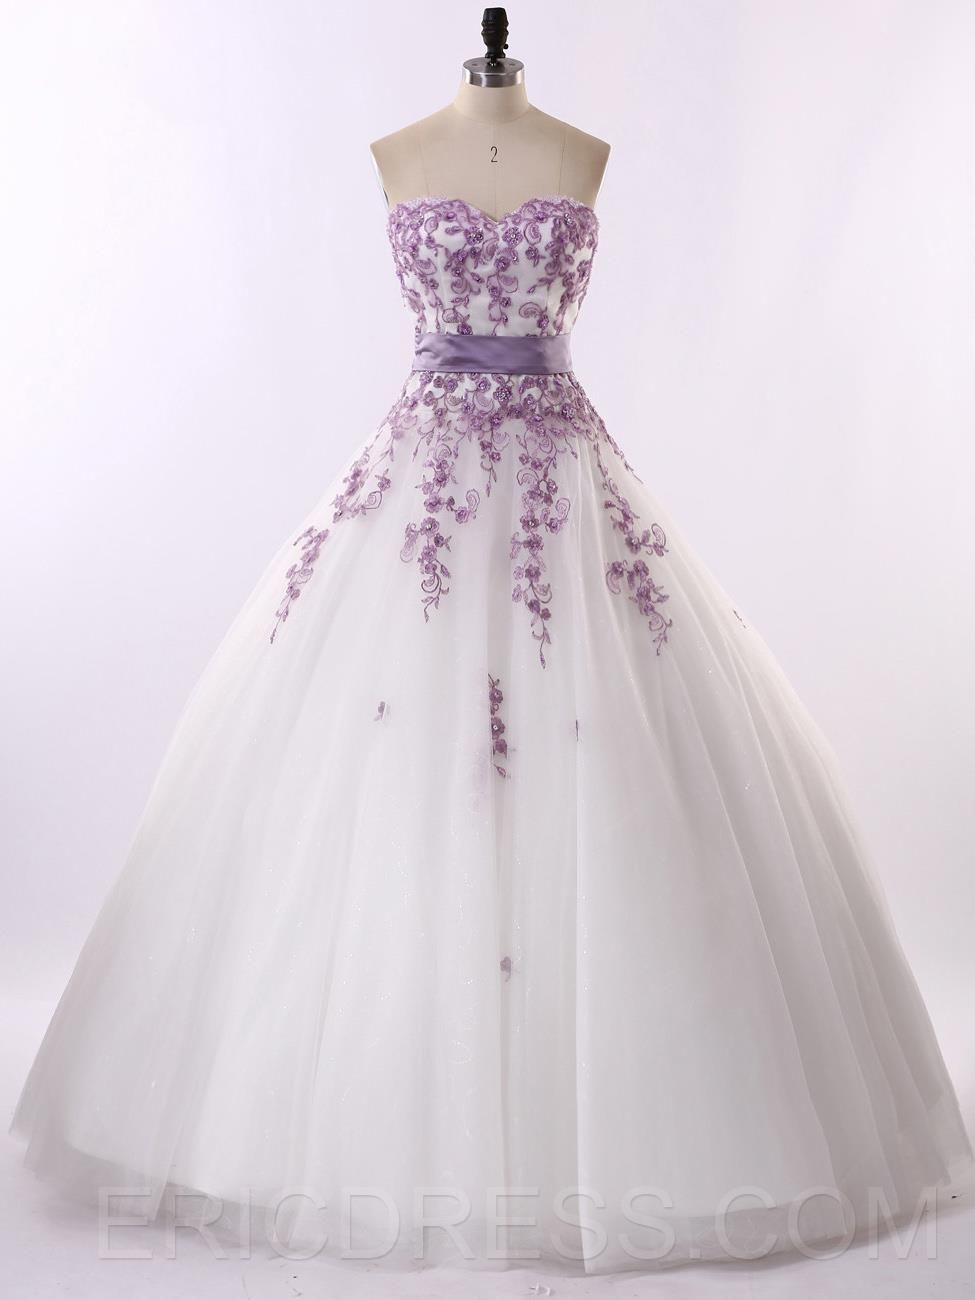 Lilac dress for wedding  Long Colorful Appliques Ball Gown Sweetheart Wedding Dress  my